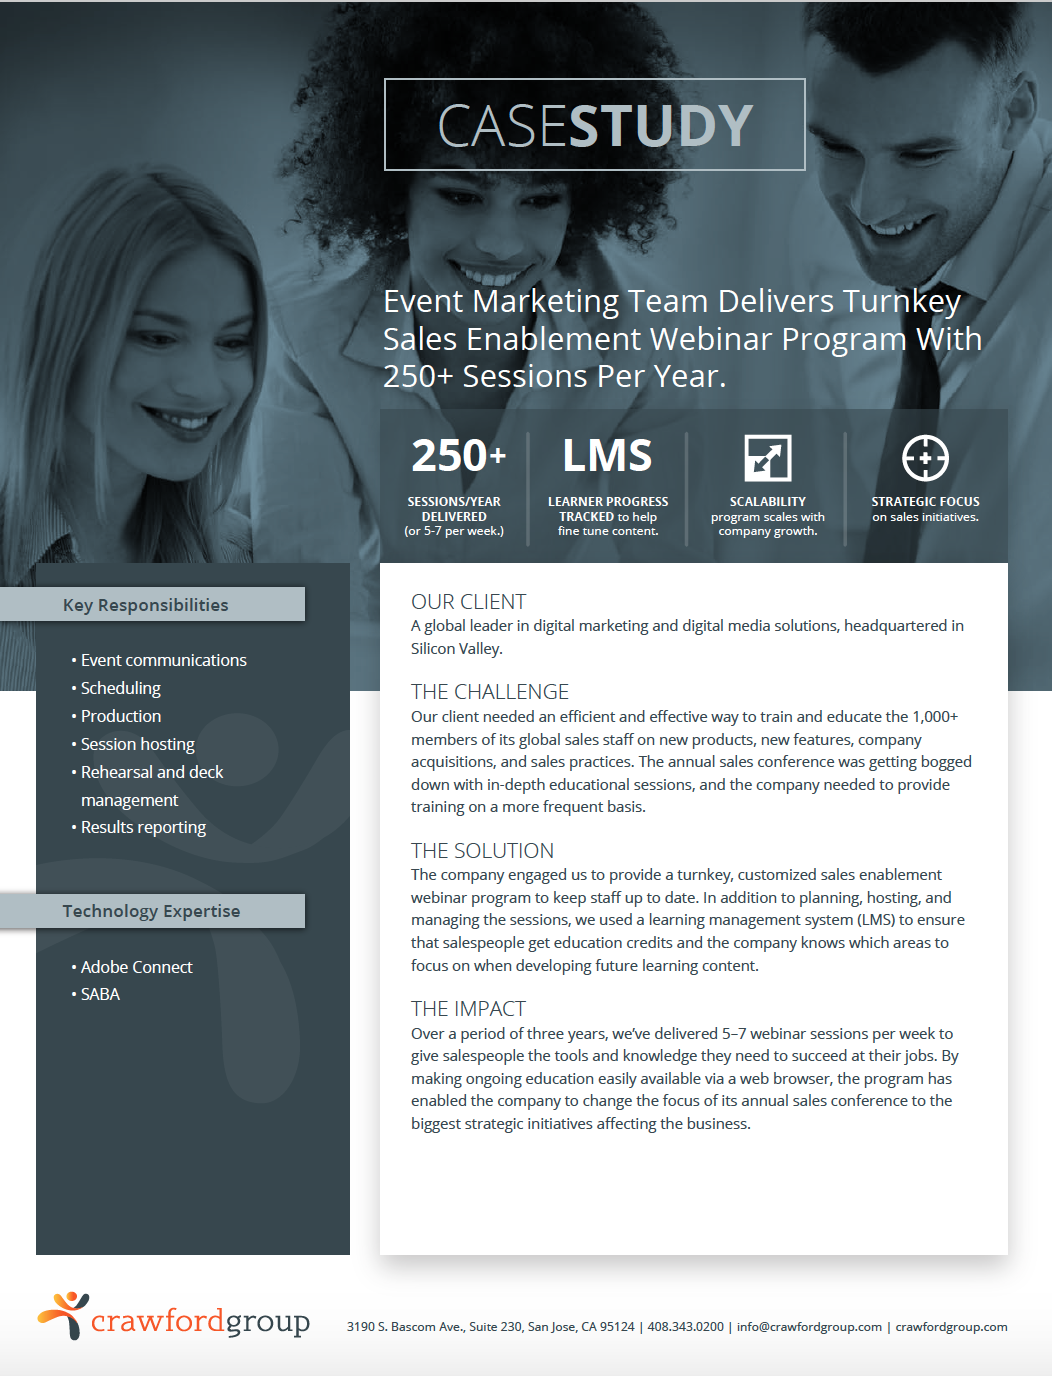 Webinar Case Study - Event marketing team delivers turnkey sales enablement webinar program with 250+ sessions per year.